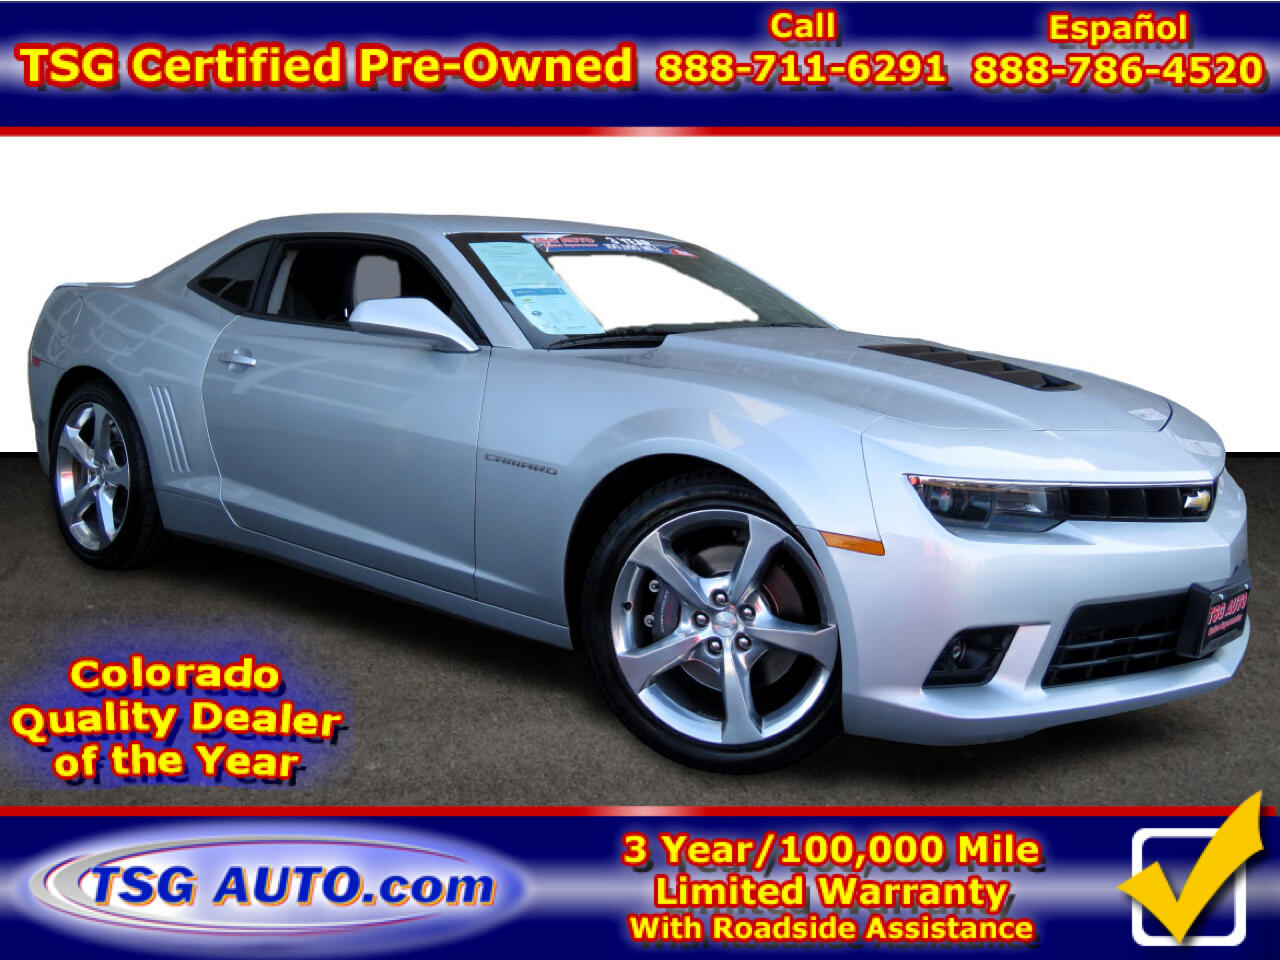 2015 Chevrolet Camaro 2dr Cpe SS w/2SS